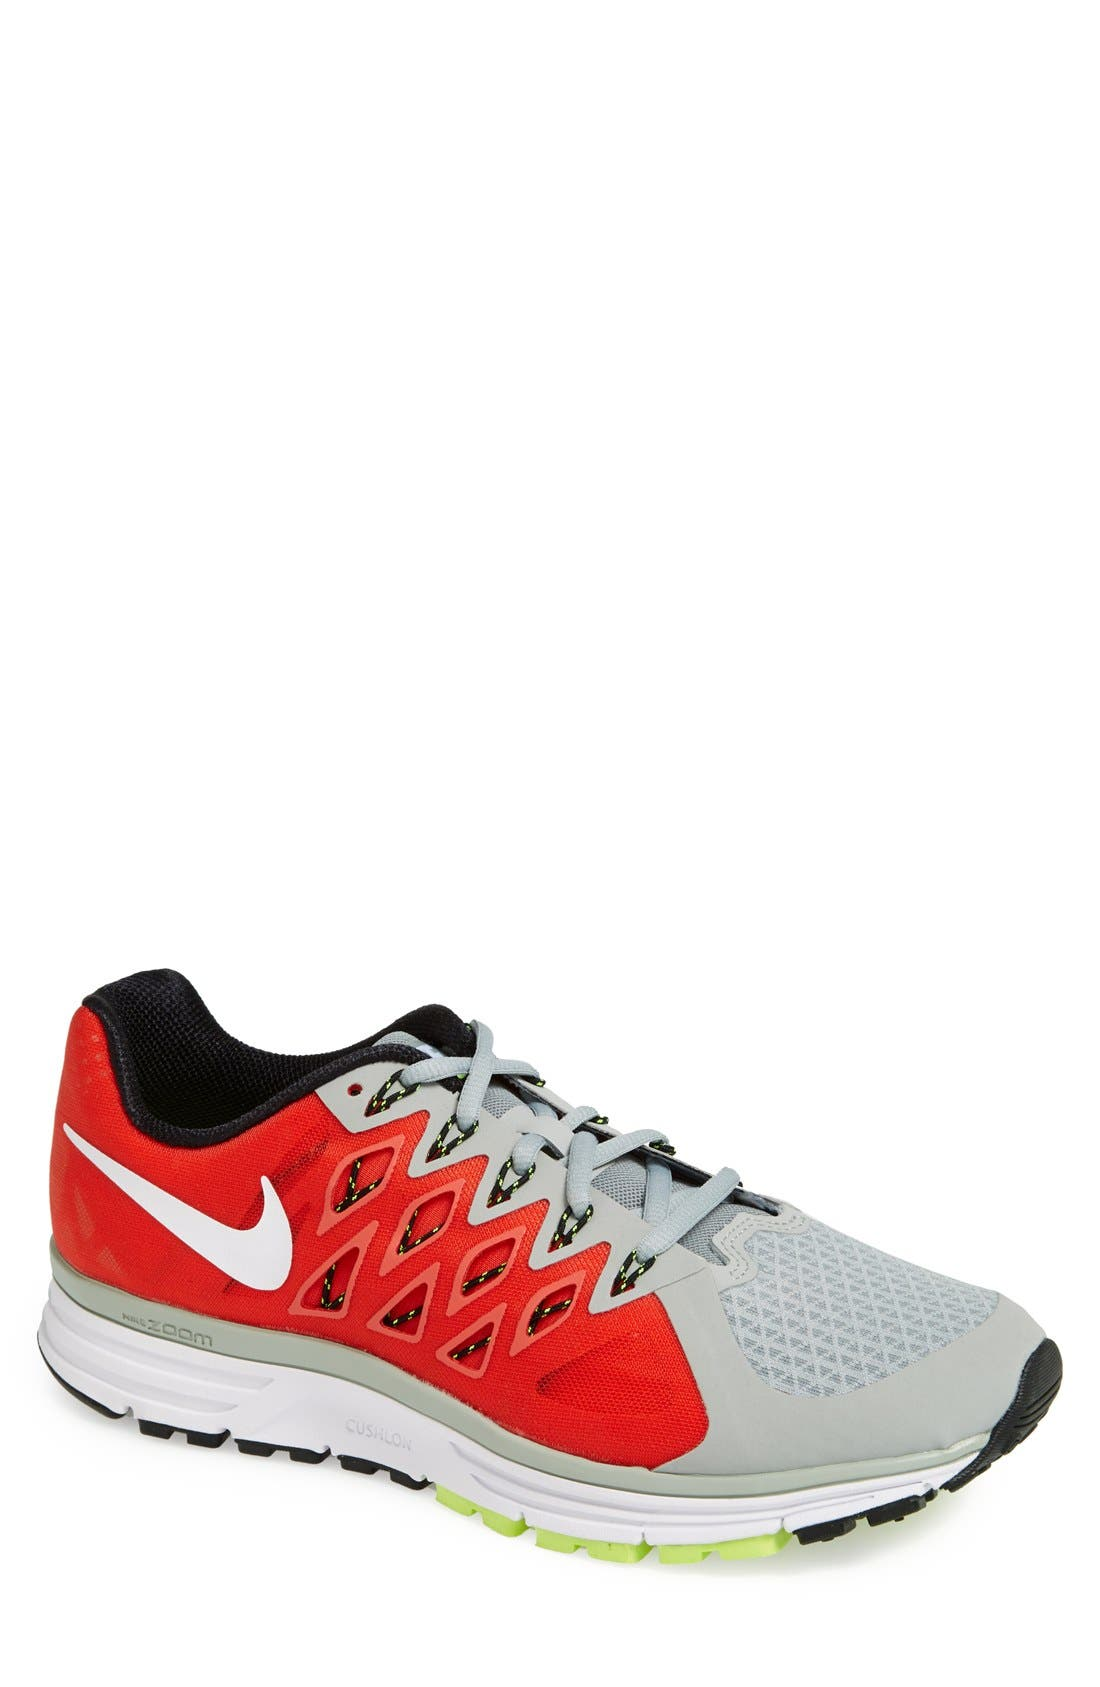 Alternate Image 1 Selected - Nike 'Zoom Vomero 9' Running Shoe (Men)